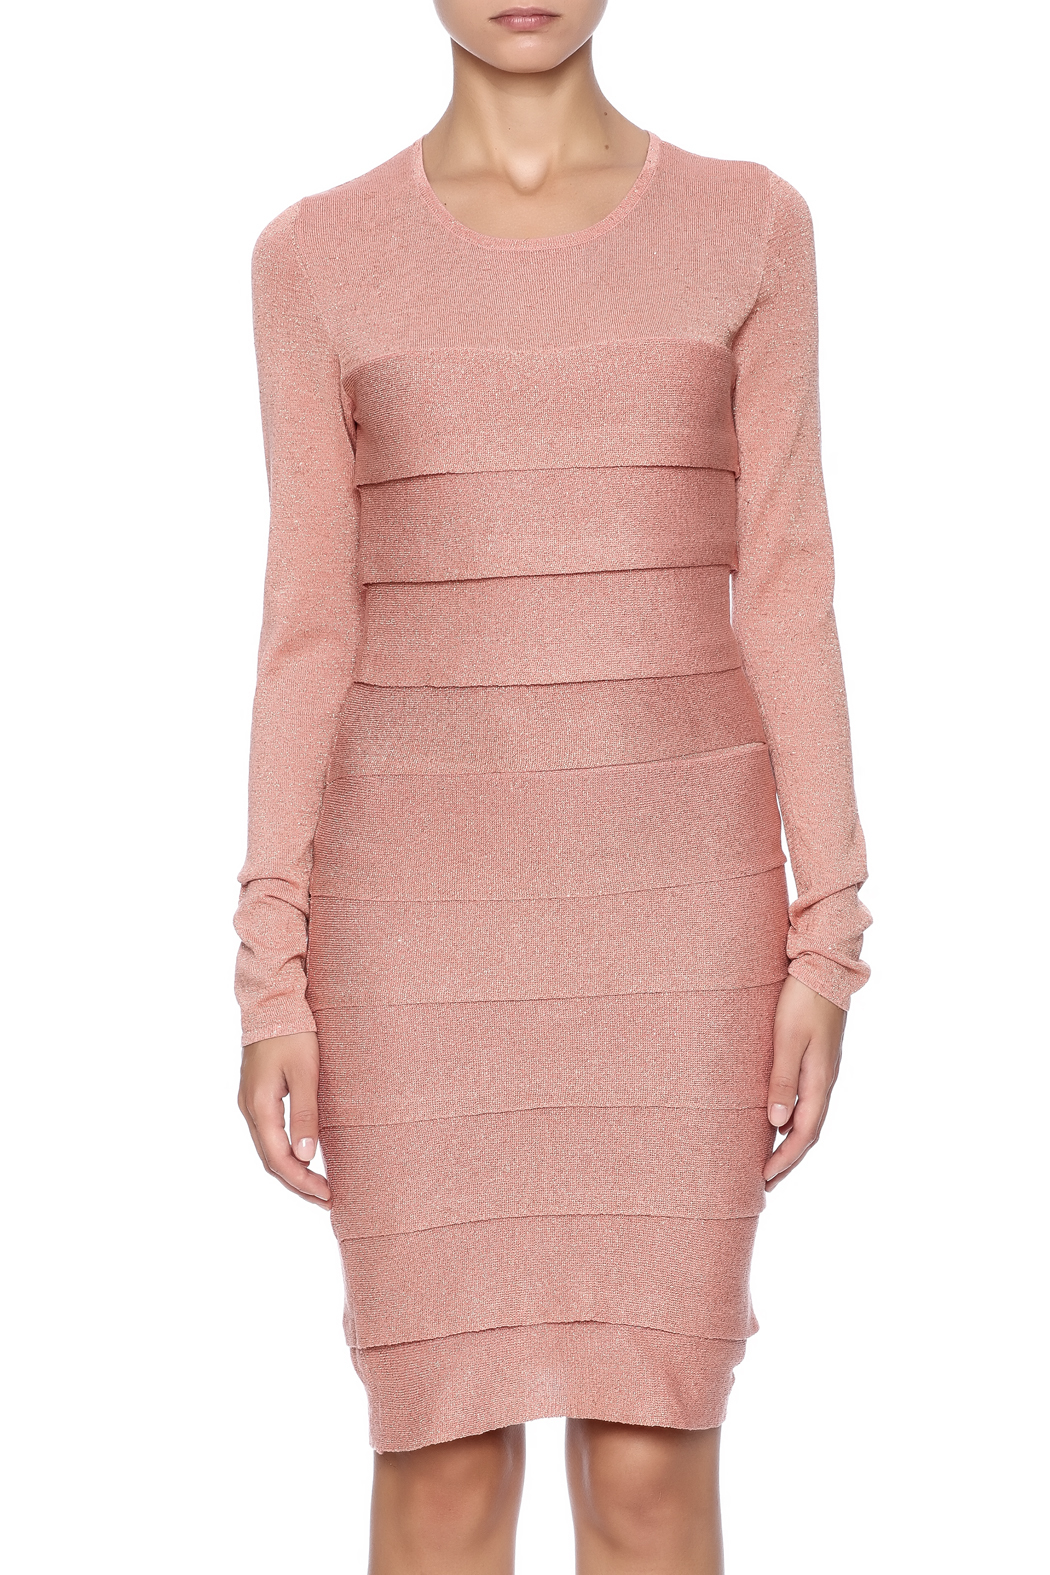 BCBG Max Azria Mariah Dress - Side Cropped Image